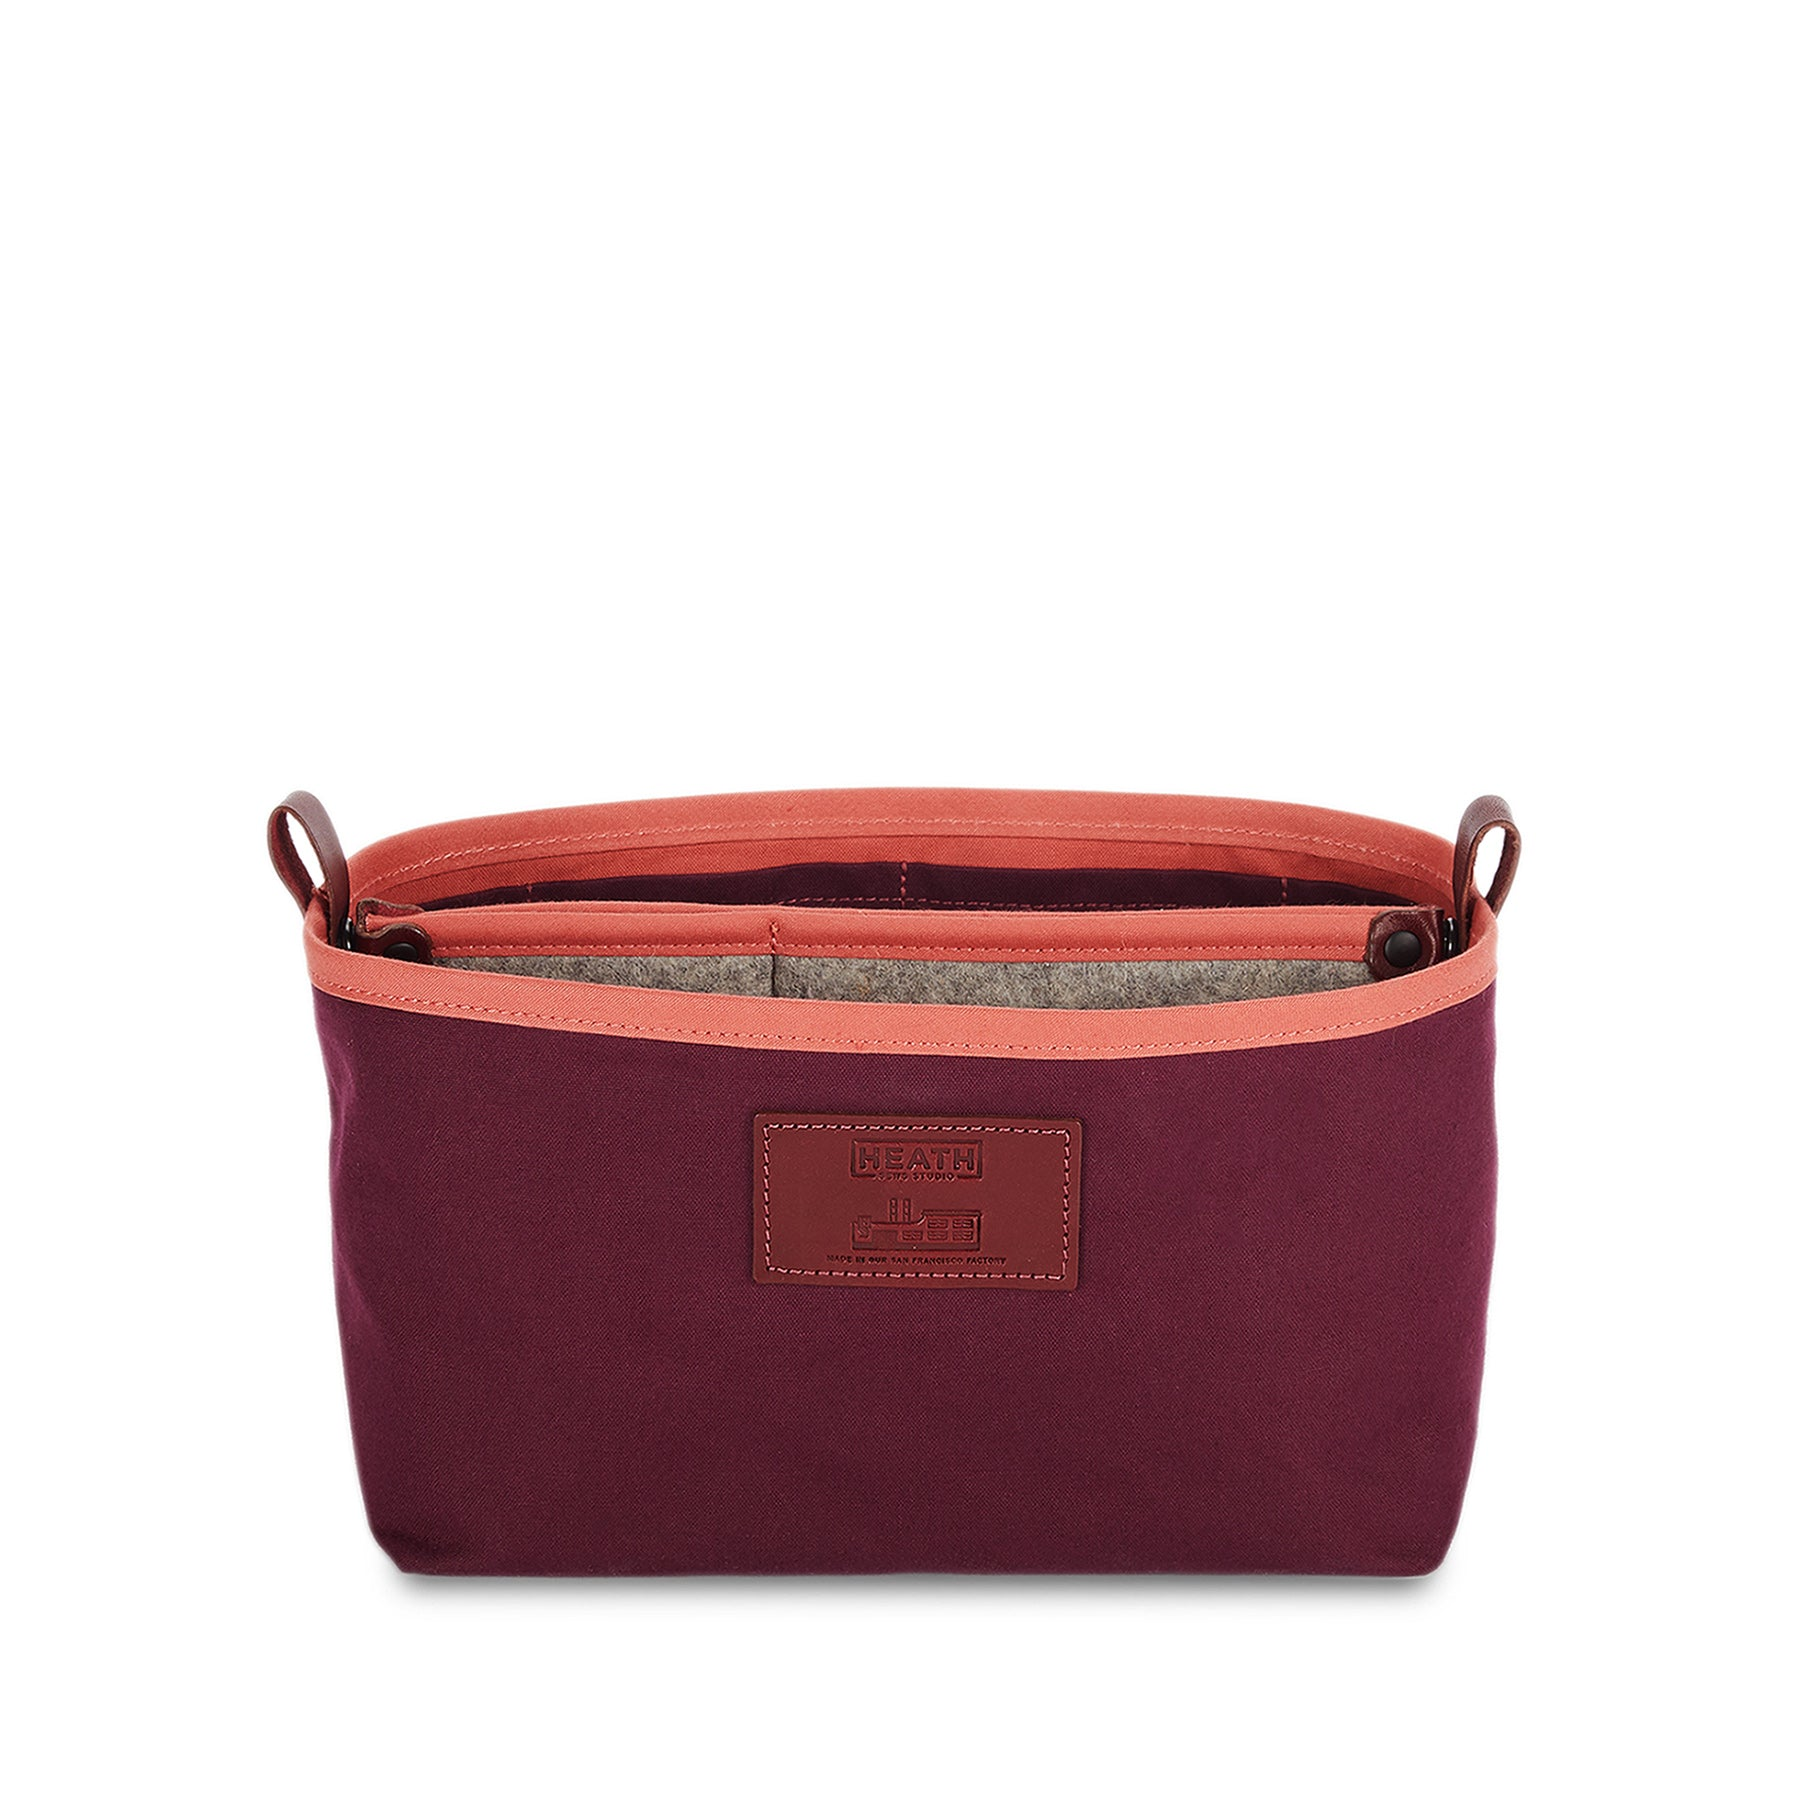 Organizer Bucket in Plum Zoom Image 1